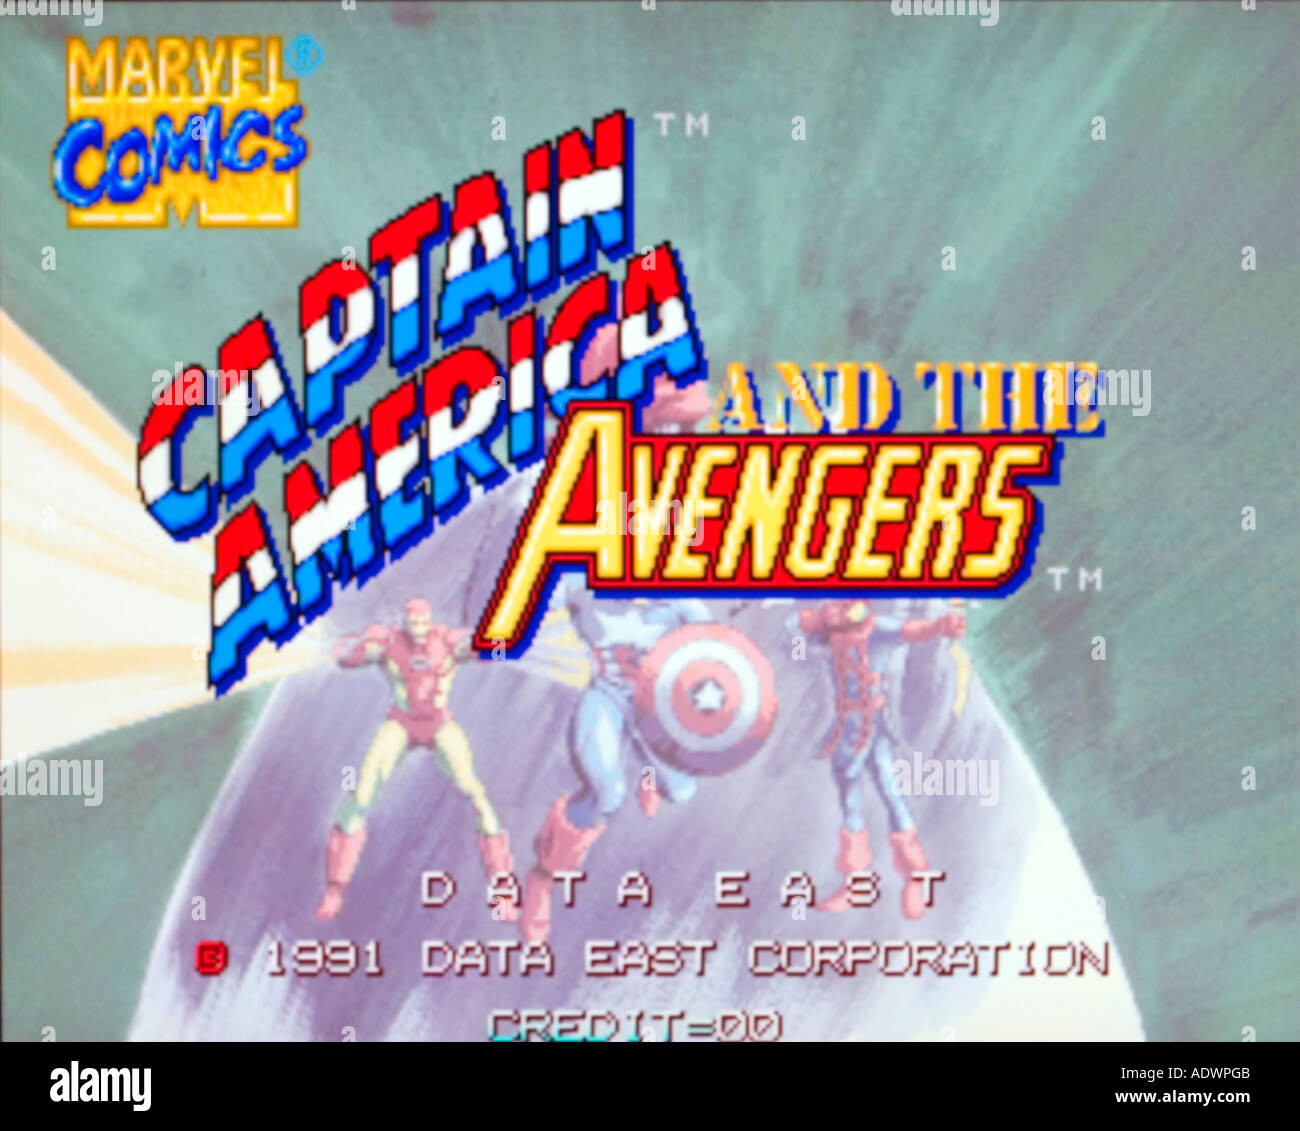 Marvel Comics Captain America and the Avengers Data East 1991 vintage arcade videogame screenshot - EDITORIAL USE ONLY - Stock Image